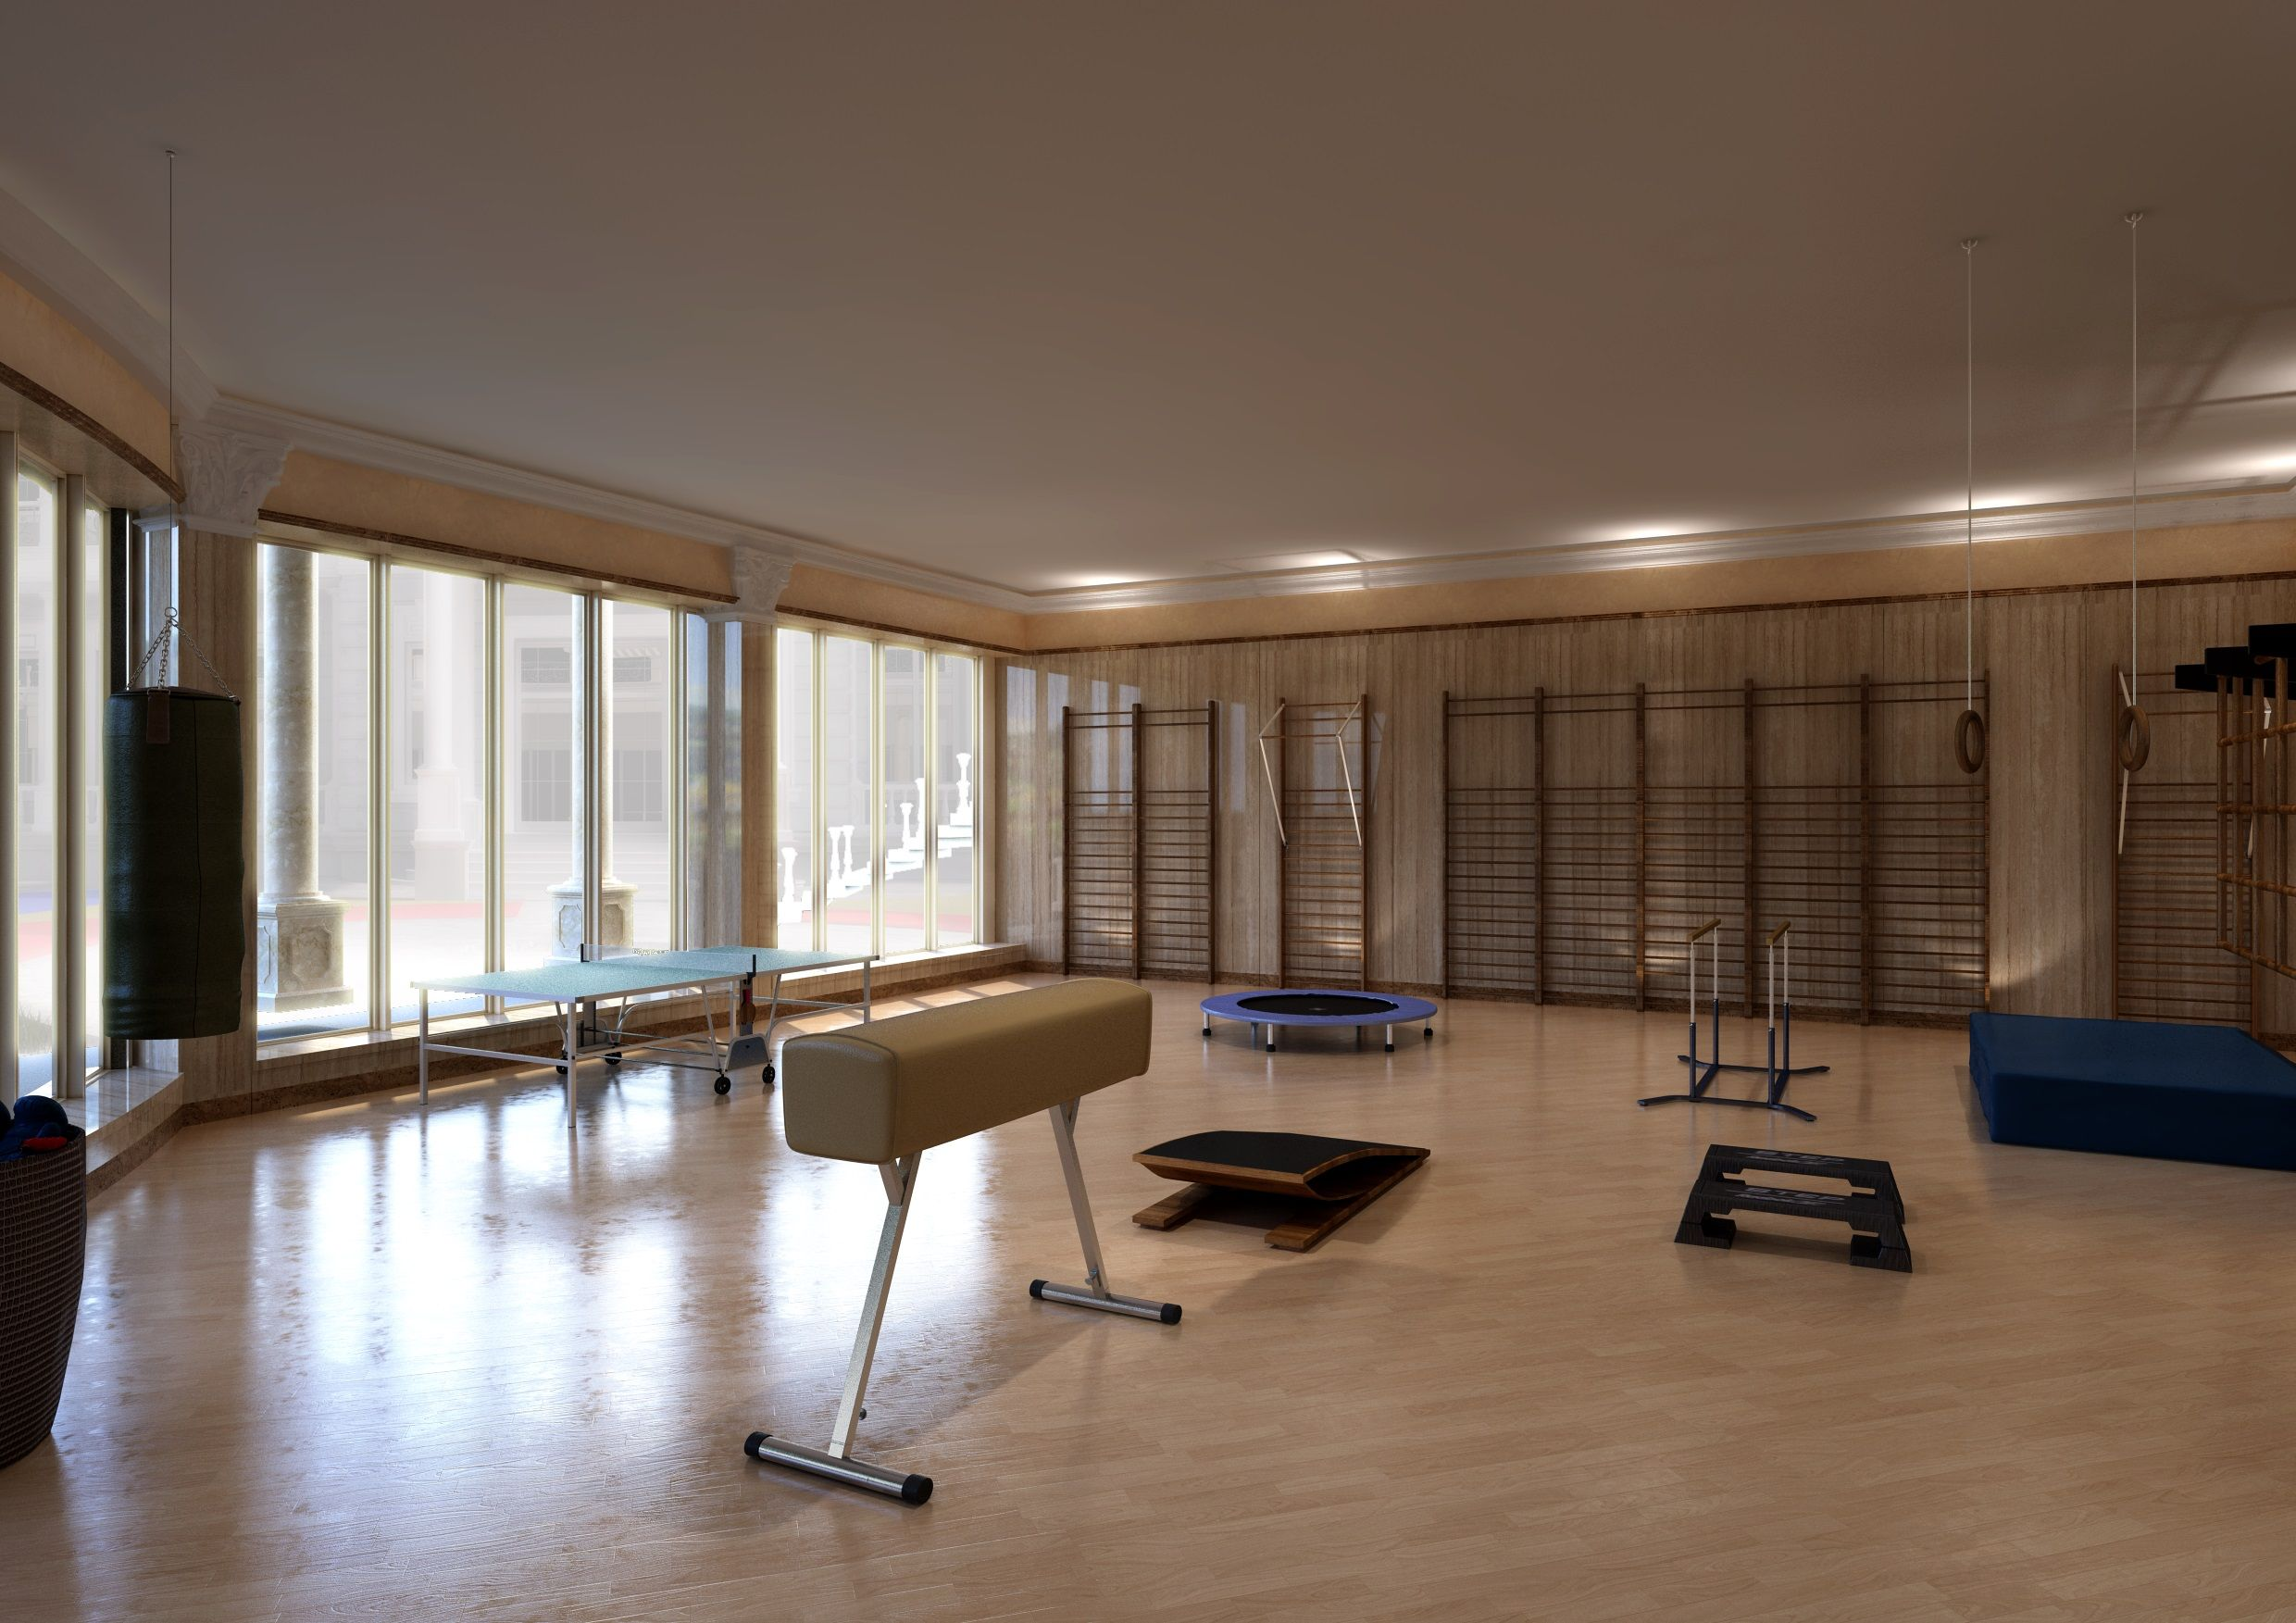 Fitness Room 2 Img004 #Fitness #Massimotrezziforniture Project By Massimo Trezzi Forniture